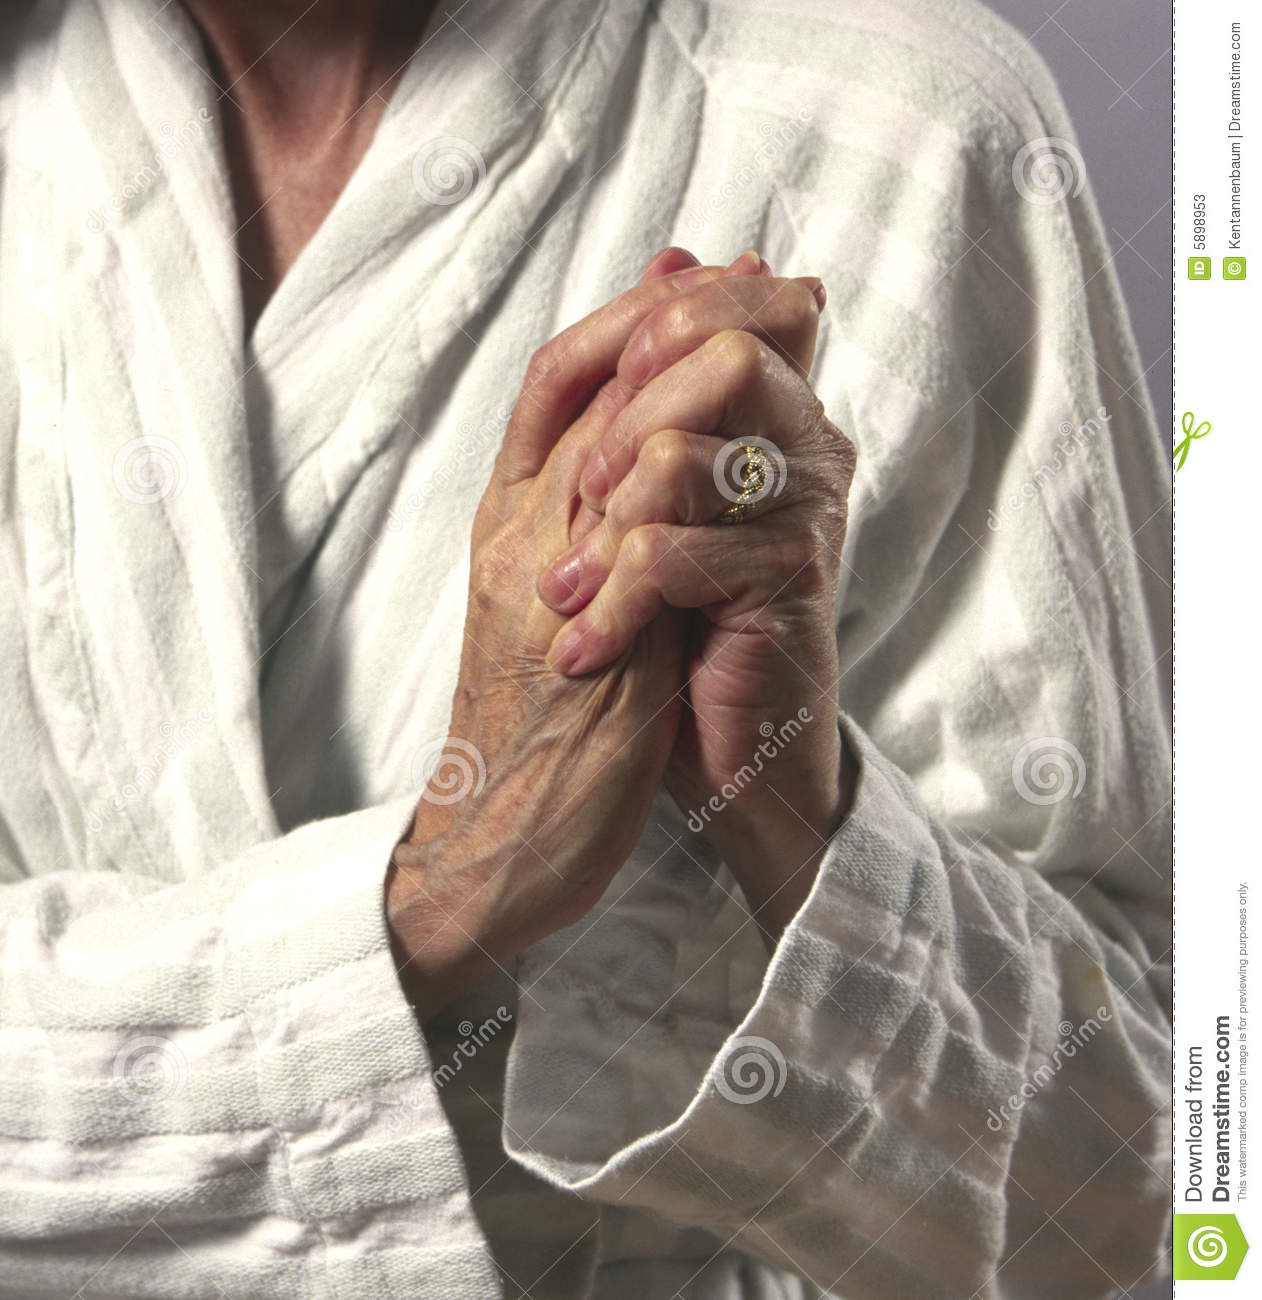 Woman Wringing Hands In Pain Stock Photos - Image: 5898953